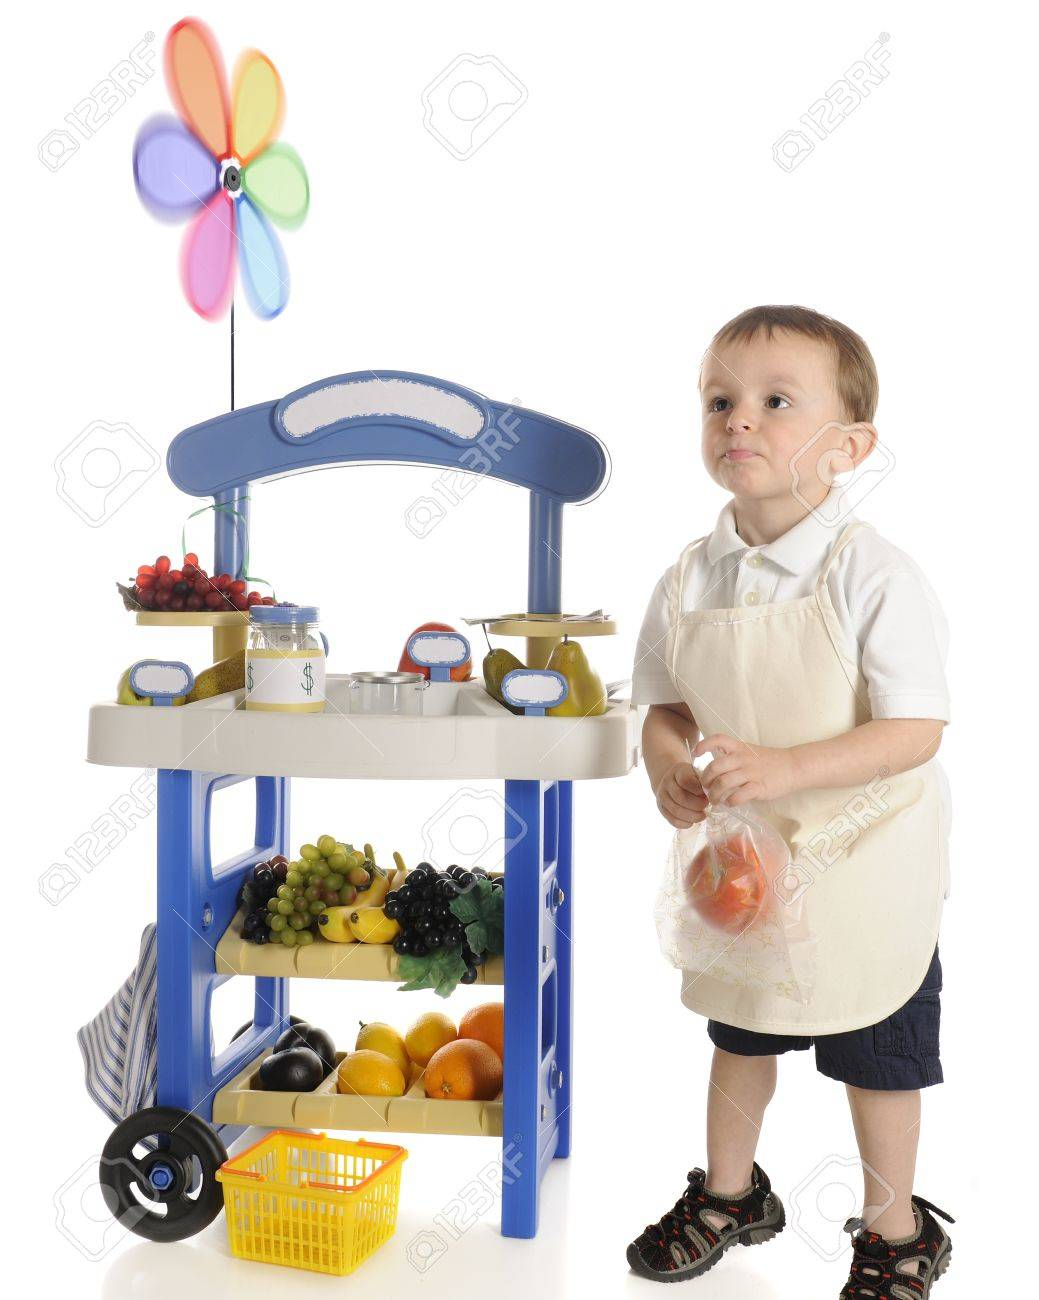 An adorable preschool fruit  vendor  standing by his fruit stand with an apple in a plastic bag, looking out towards customers  not visible    Motion blur on the pinwheel,  The stand Stock Photo - 13900106